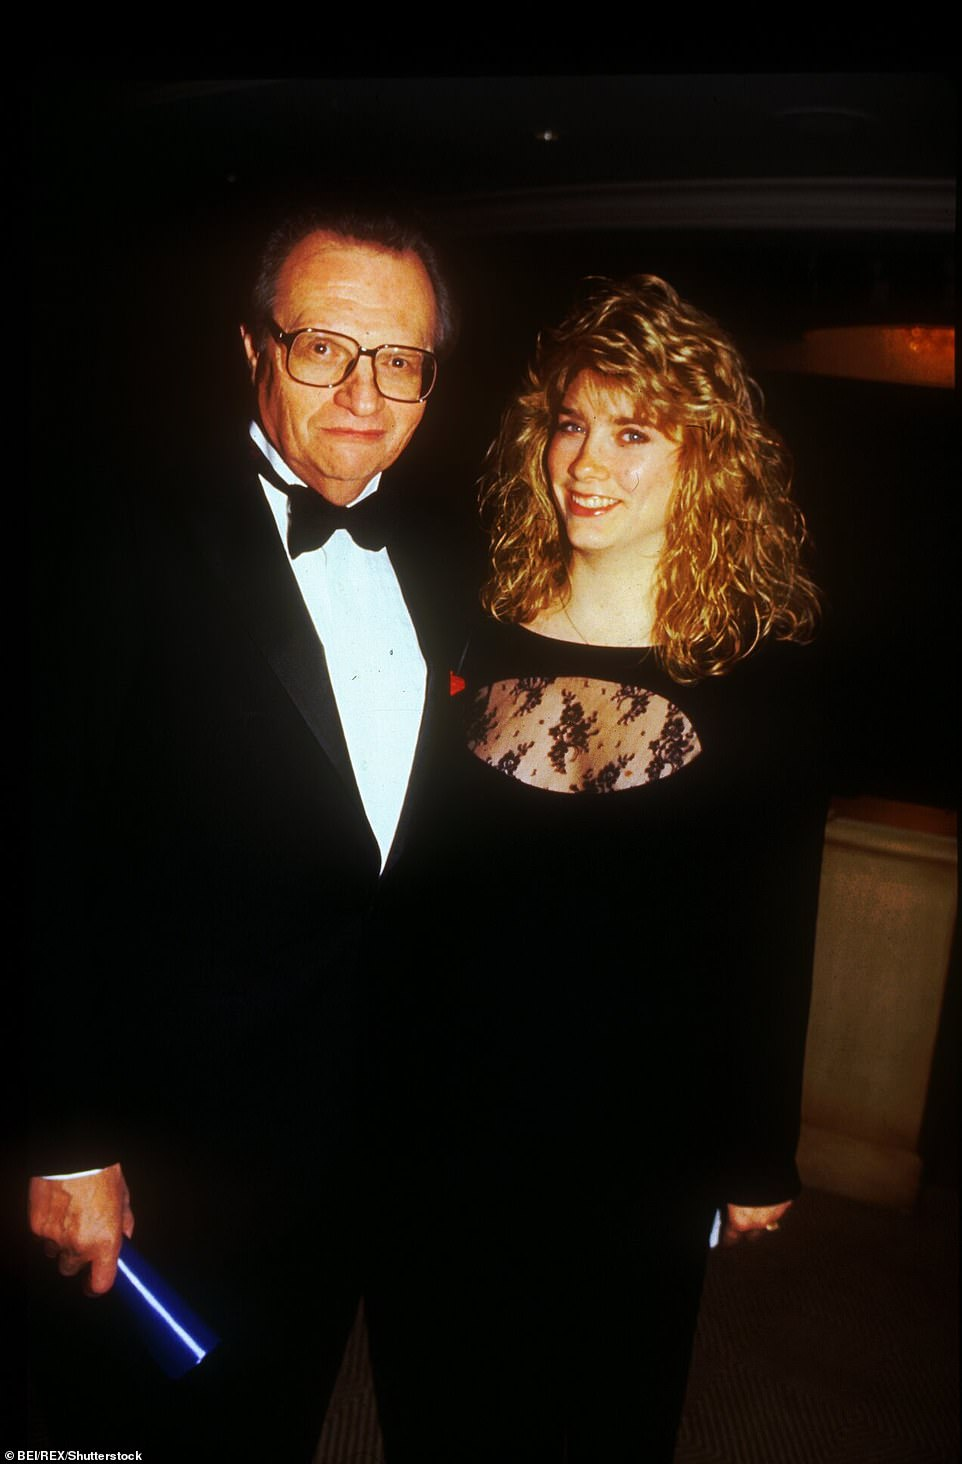 King and his daughter Chaia celebrate Frank Sinatra's 80th Birthday in Los Angeles in 1995. Jackie Gleason helped King snag his first big break as a novice radio broadcaster in 1961: a sit-down with Frank Sinatra, who famously declined all media requests. 'There was nobody bigger in the world than Frank Sinatra and he never did interviews,' said King. As a result of that first interview, the two formed an  unlikely friendship that lasted until Sinatra's death in 1998. He wrote to King: 'What you do is you make the camera disappear'